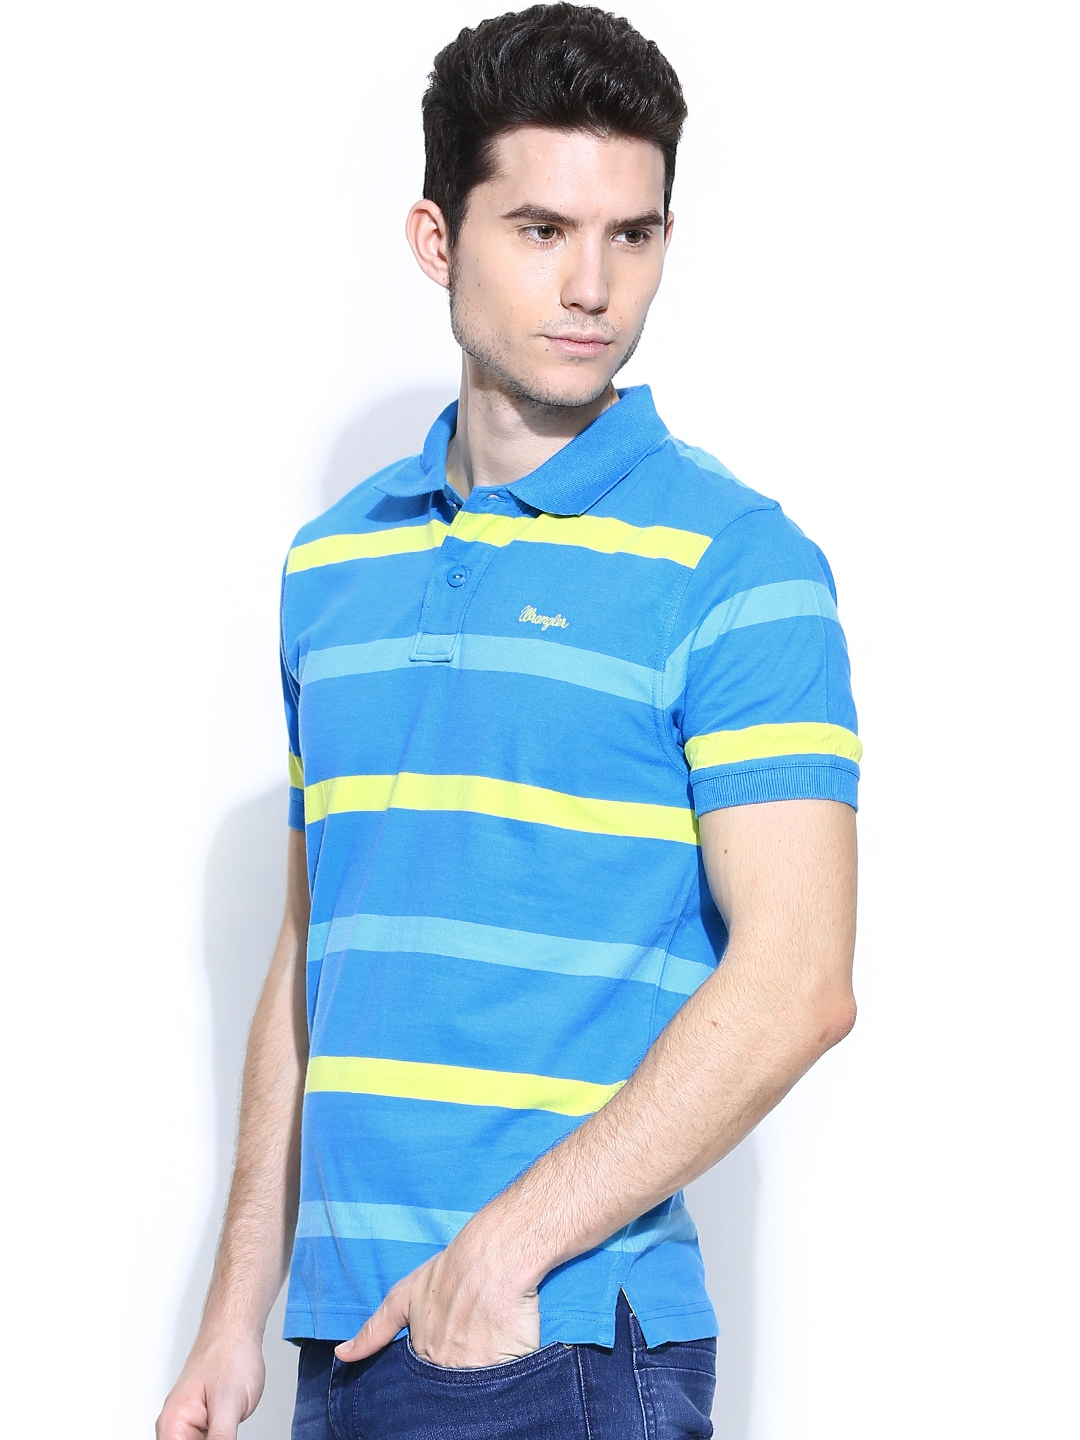 Looking for the latest styles of striped t-shirts for men in a range of colors and fabrics? Shop for men's striped t-shirts now at PacSun and enjoy free shipping on orders over $50! Yellow Red Pink Purple Blue Green Brown Ivory Grey Gold Black Multi Shop By Size S M L XL Migos Culture Stripe Blue & White T-Shirt $ New Arrival.